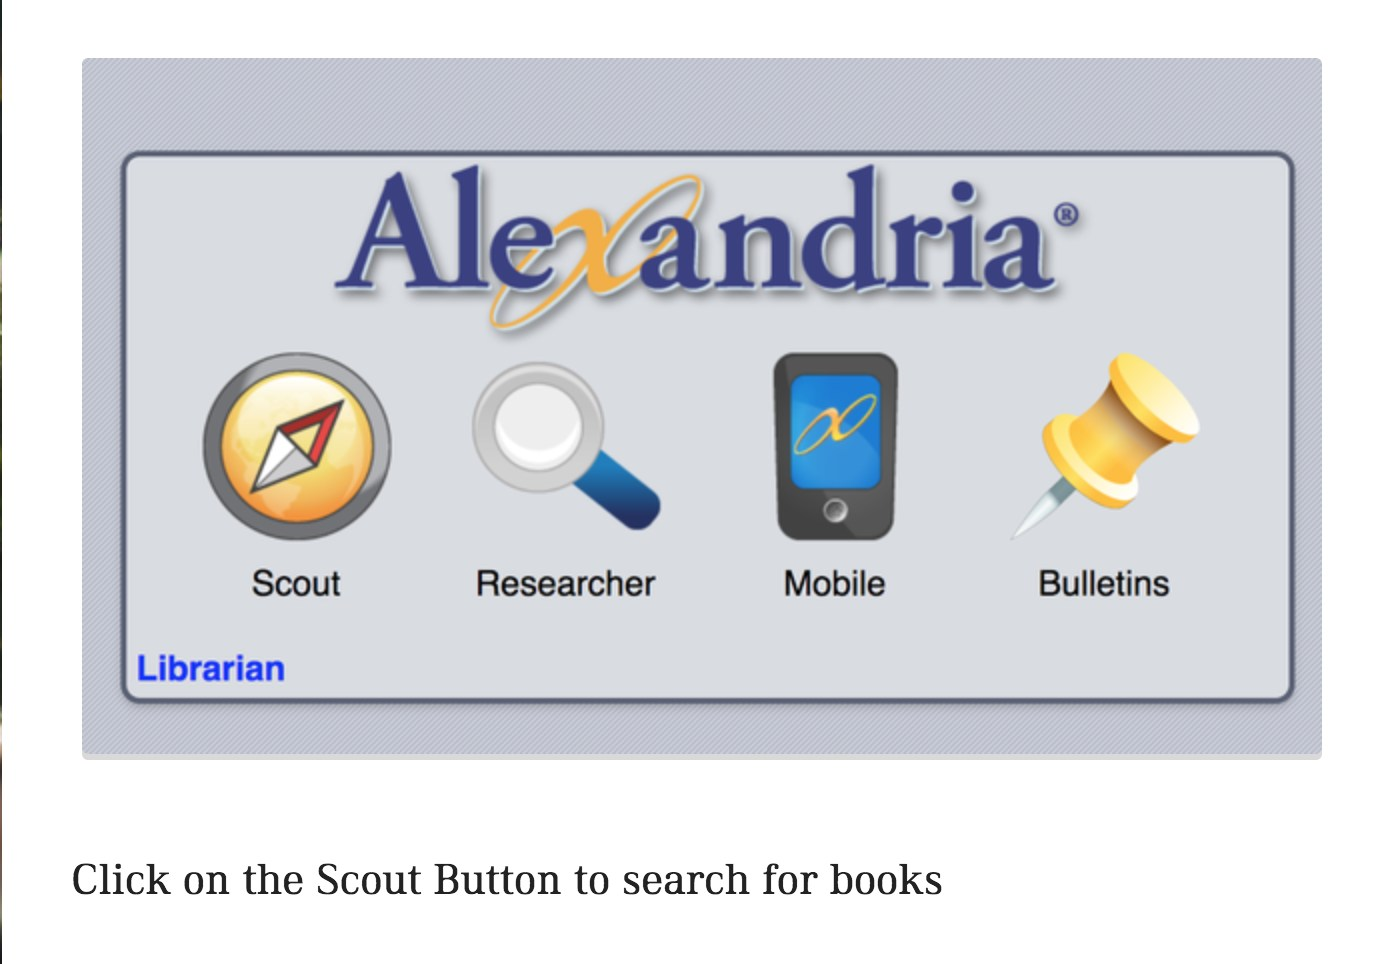 Click on the Scout Button to search for books